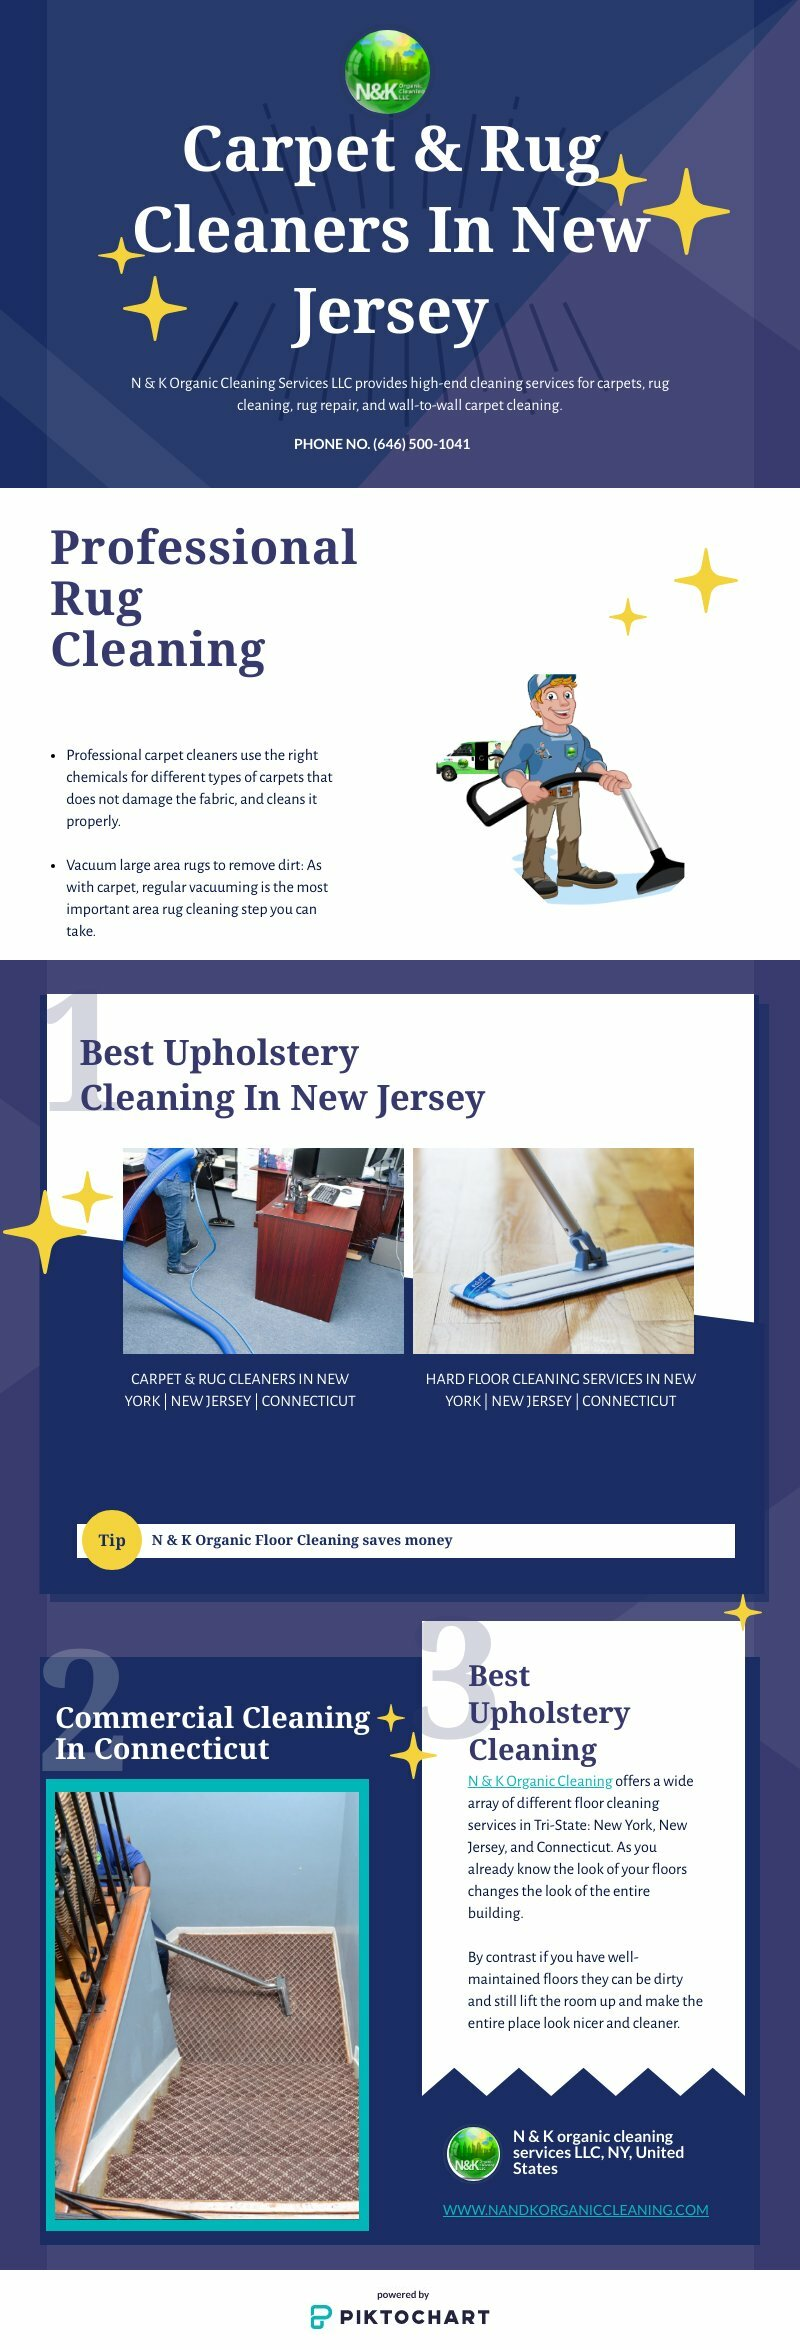 Carpet & Rug Cleaners In New York